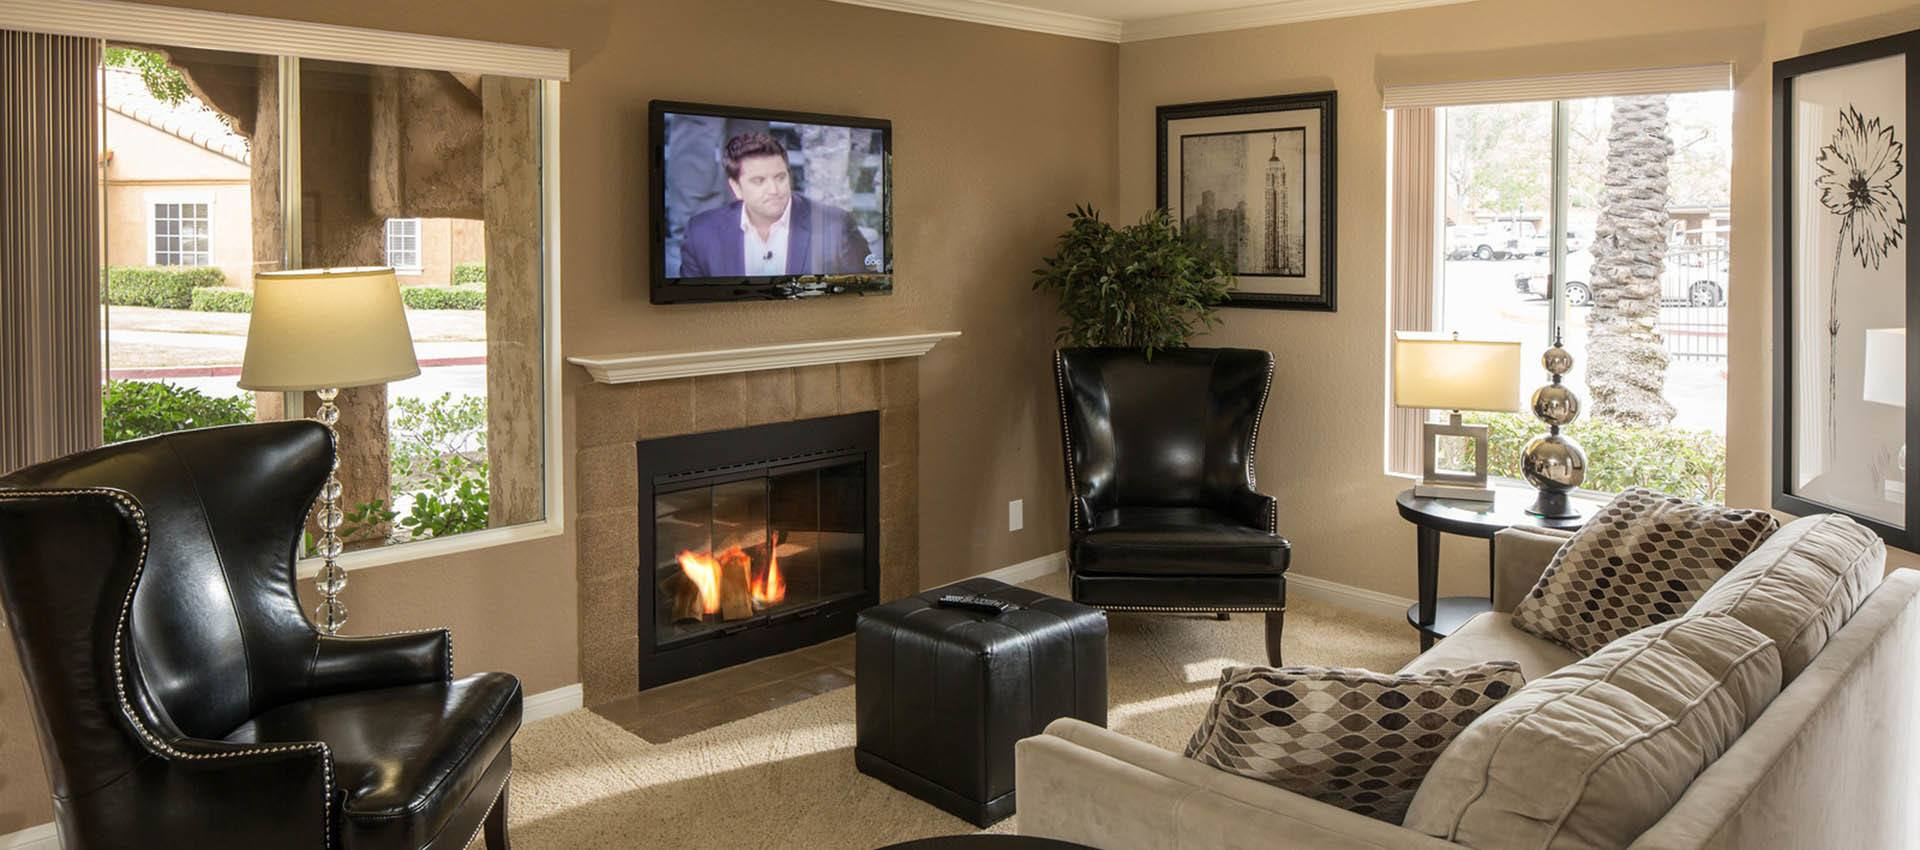 Living Room With Fireplace at Hidden Hills Condominium Rentals in Laguna Niguel, CA